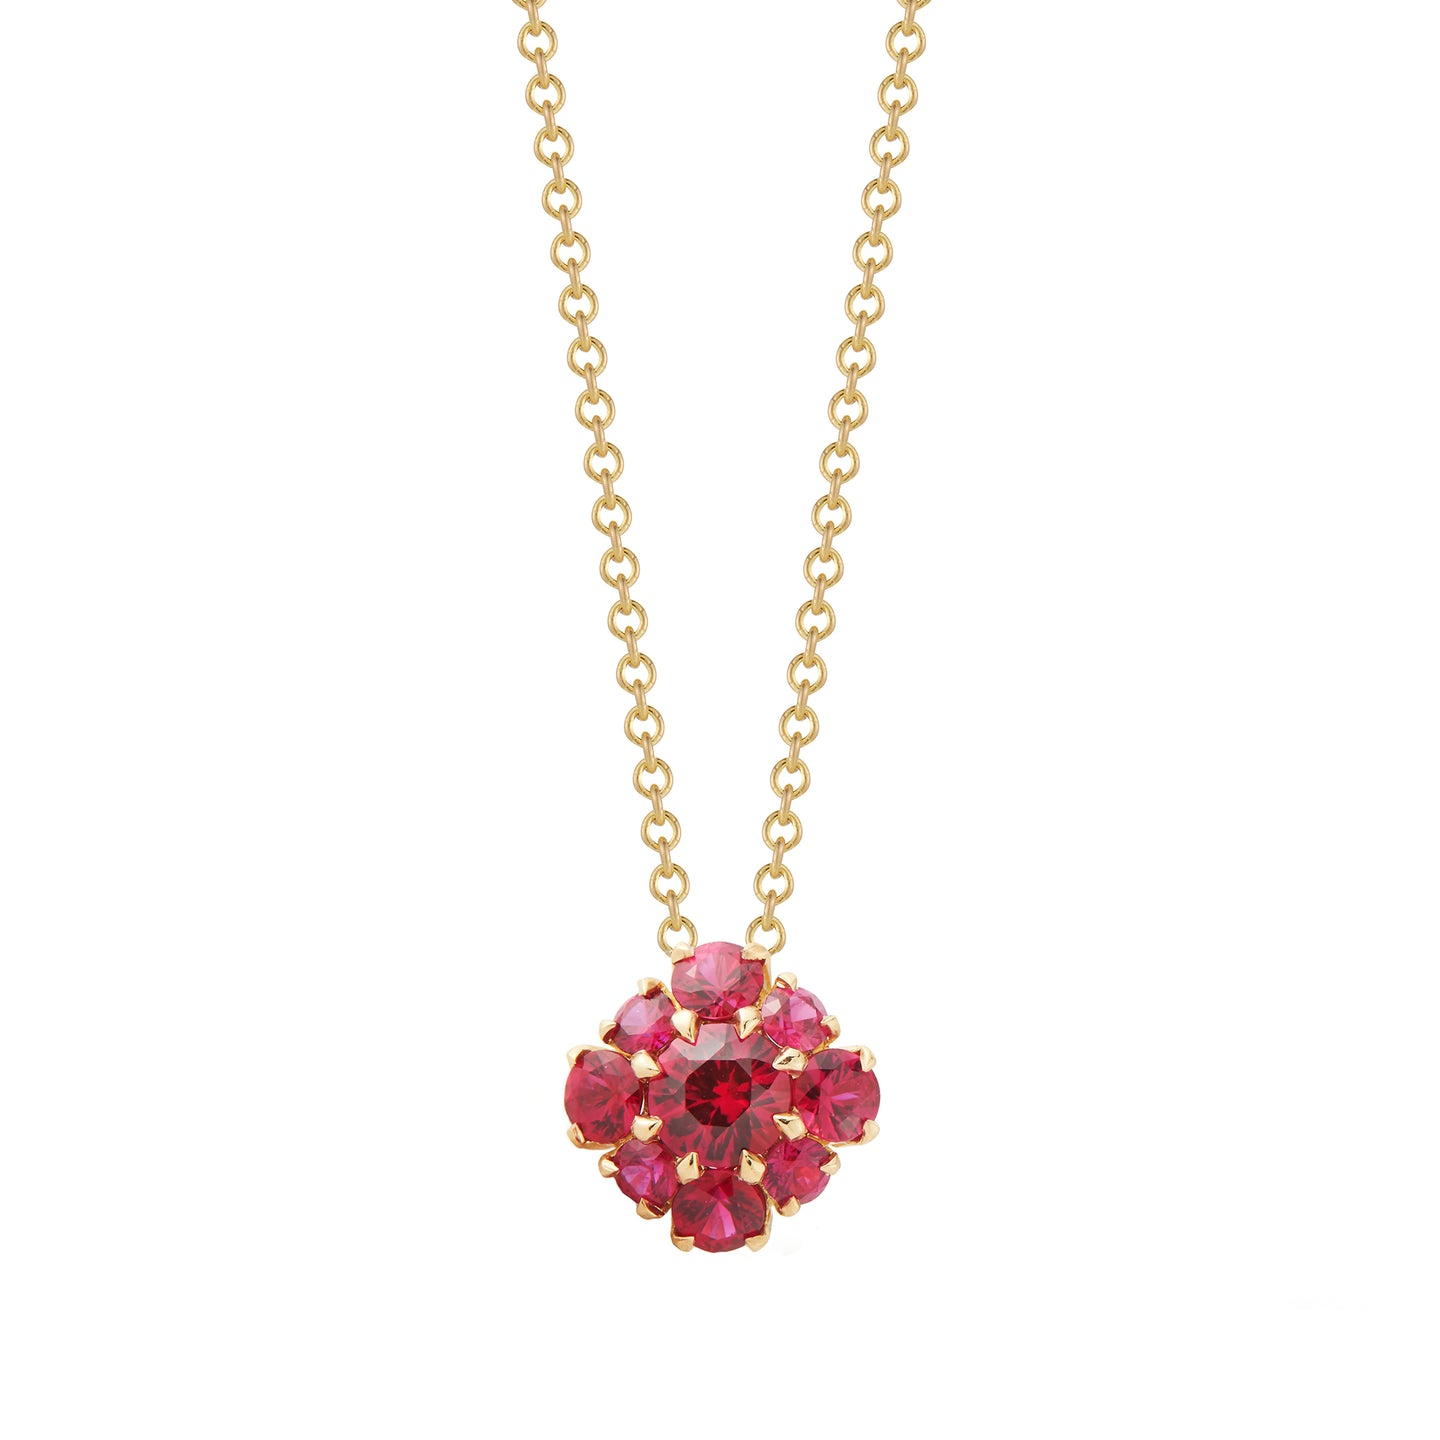 33359 Ruby Berry Cluster Pendant